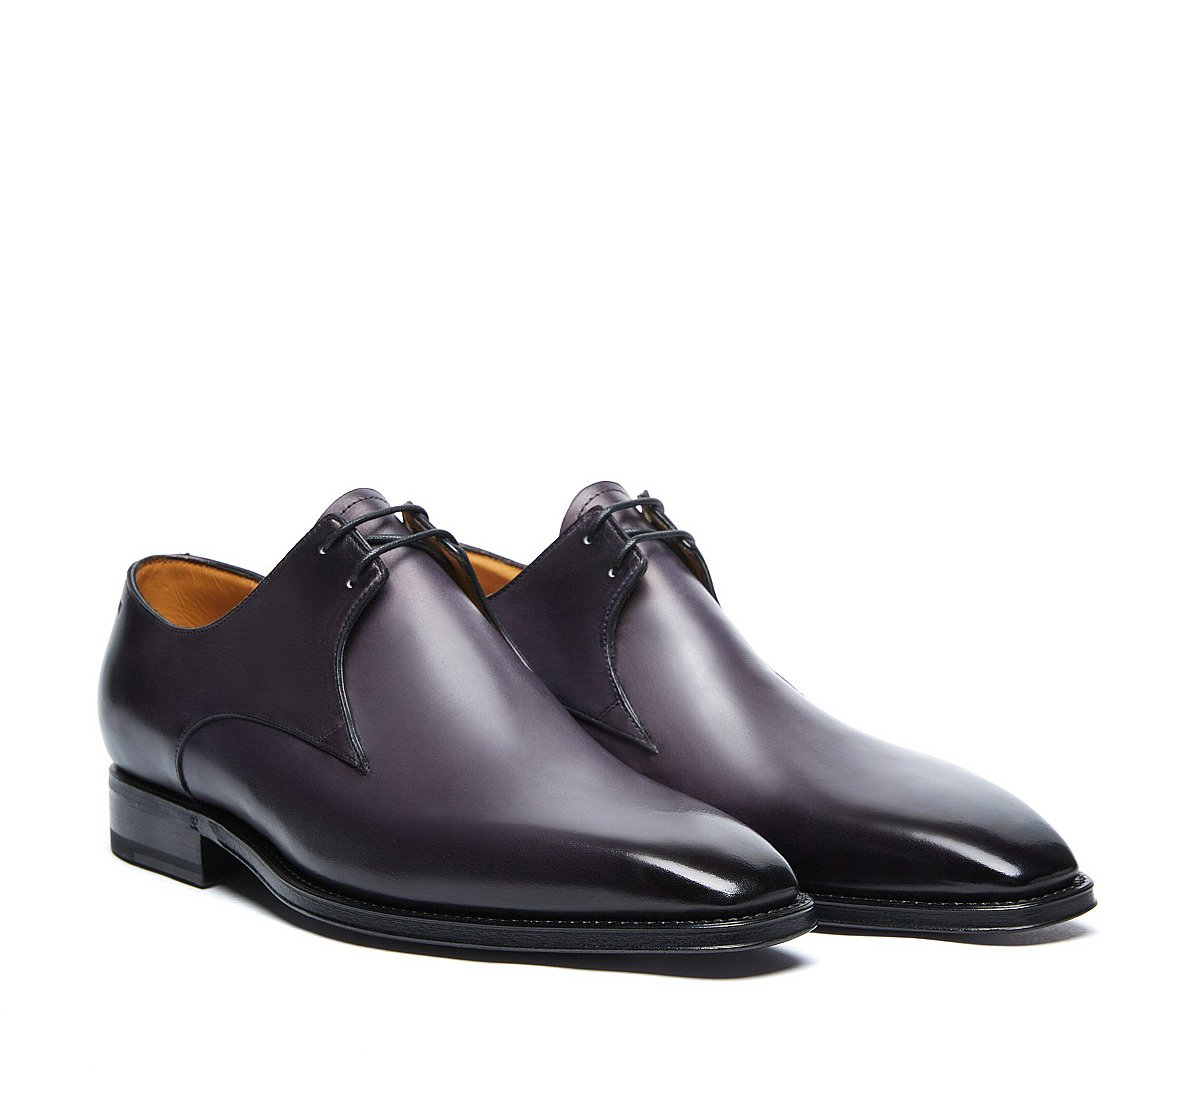 Flex Goodyear lace-ups in luxury hand-buffed calf leather